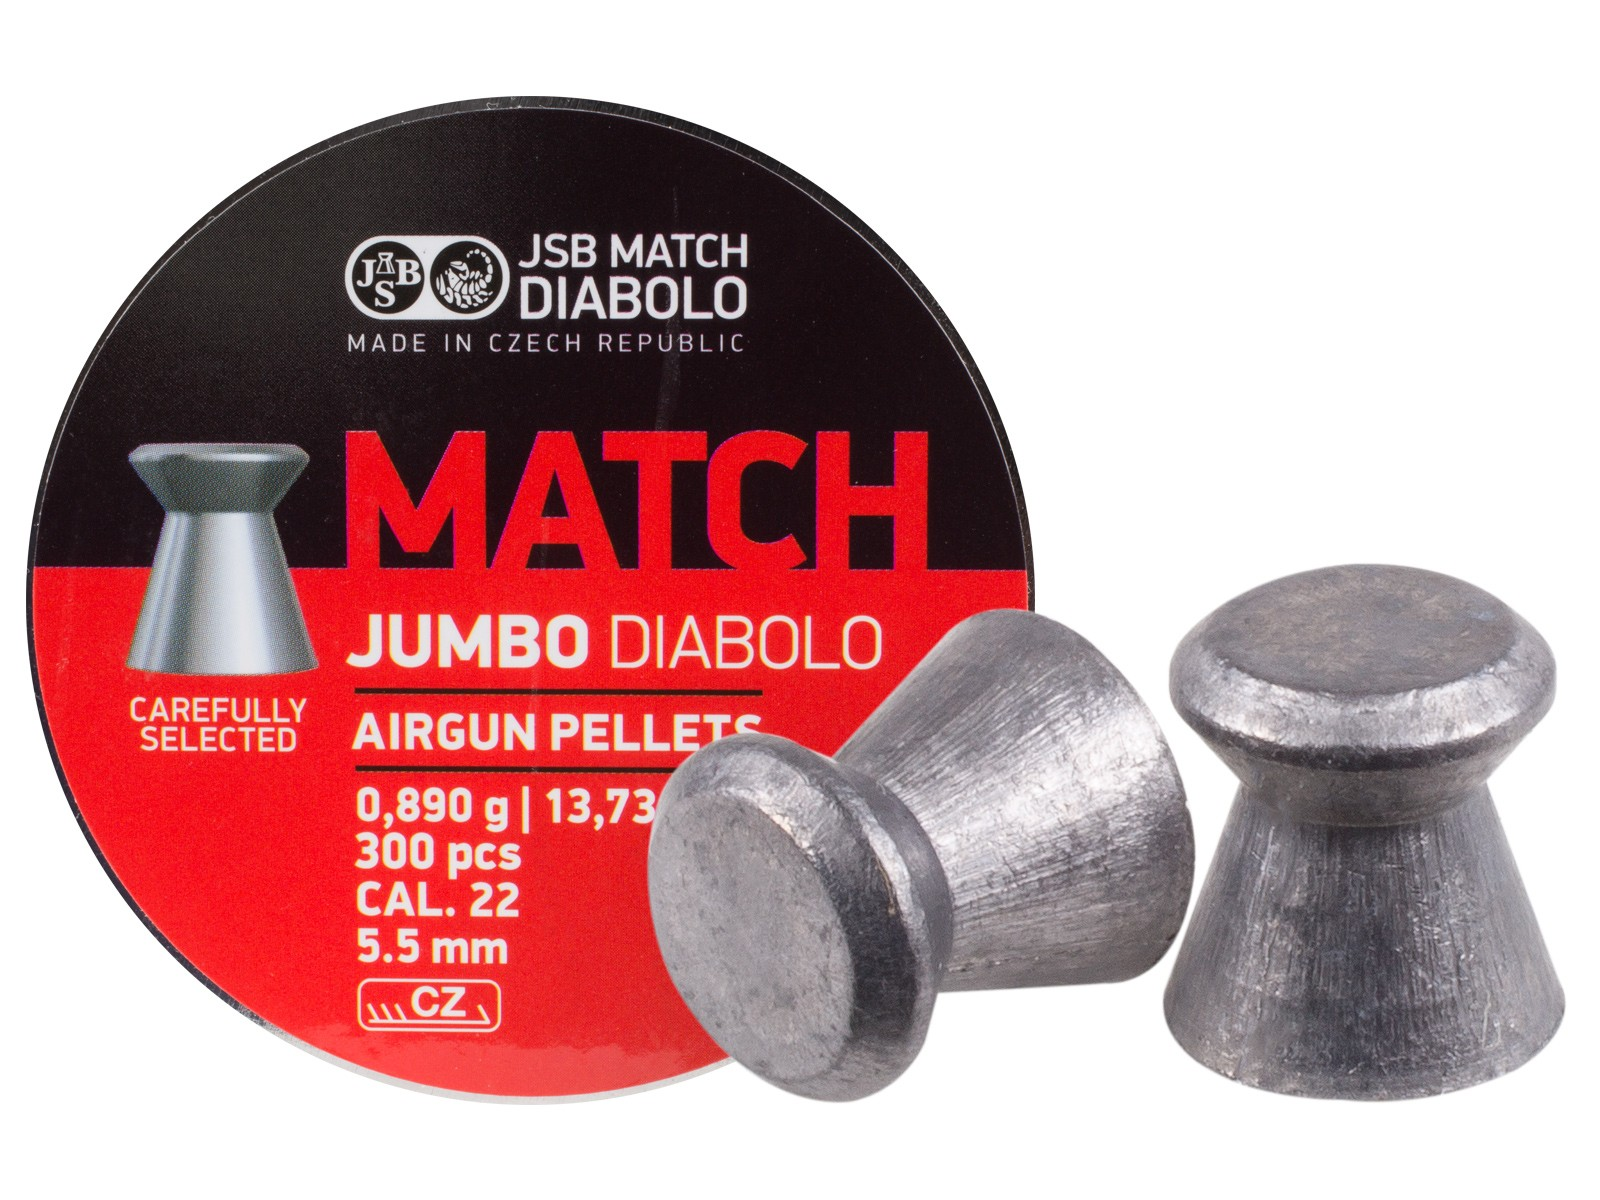 JSB Match Jumbo Diabolo Pellets, .22 Cal, 13.73 Grains, Wadcutter, 300ct